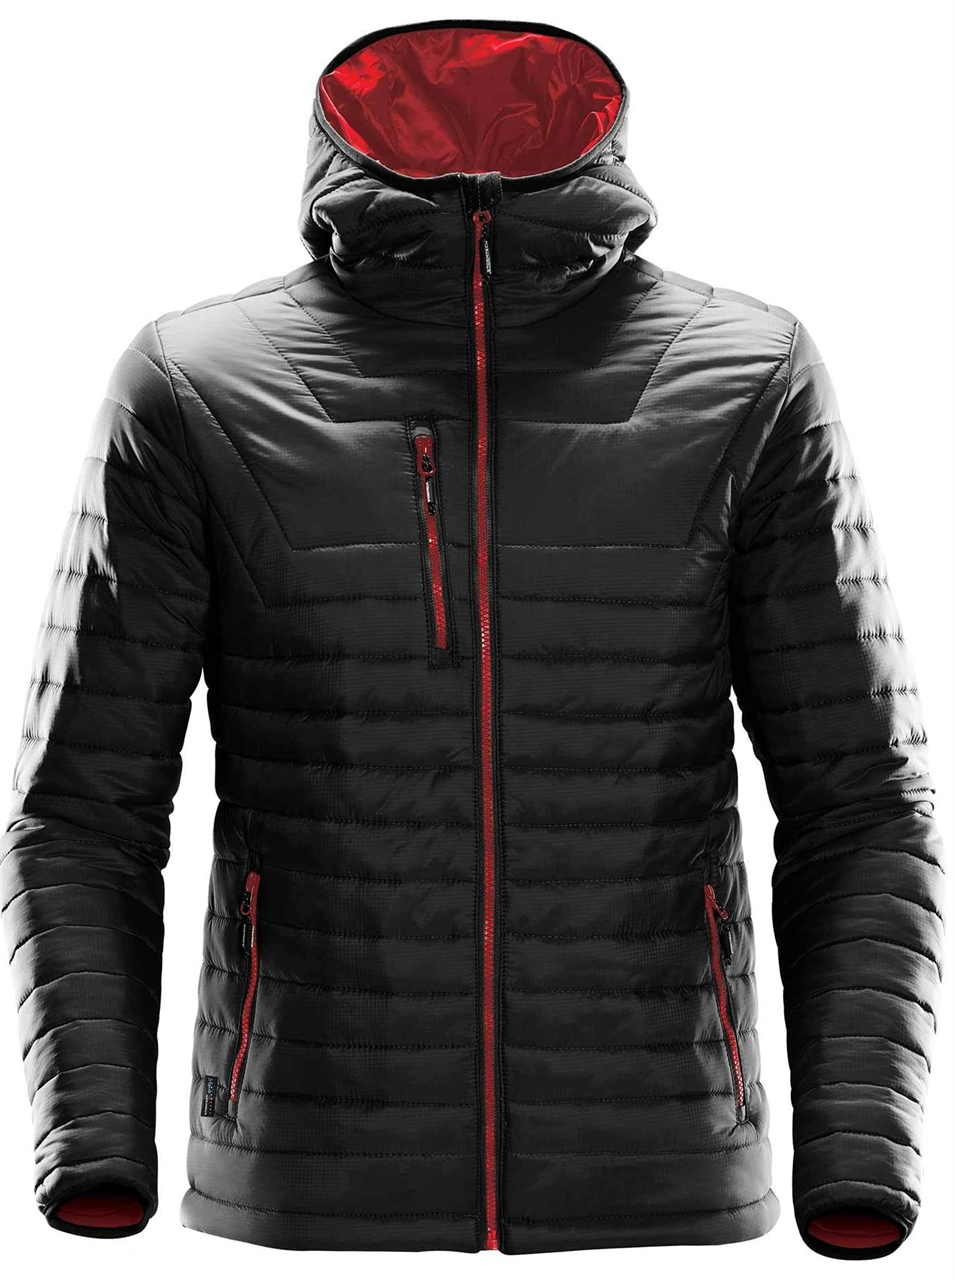 Picture of Stormtech Men's Gravity Thermal Jacket